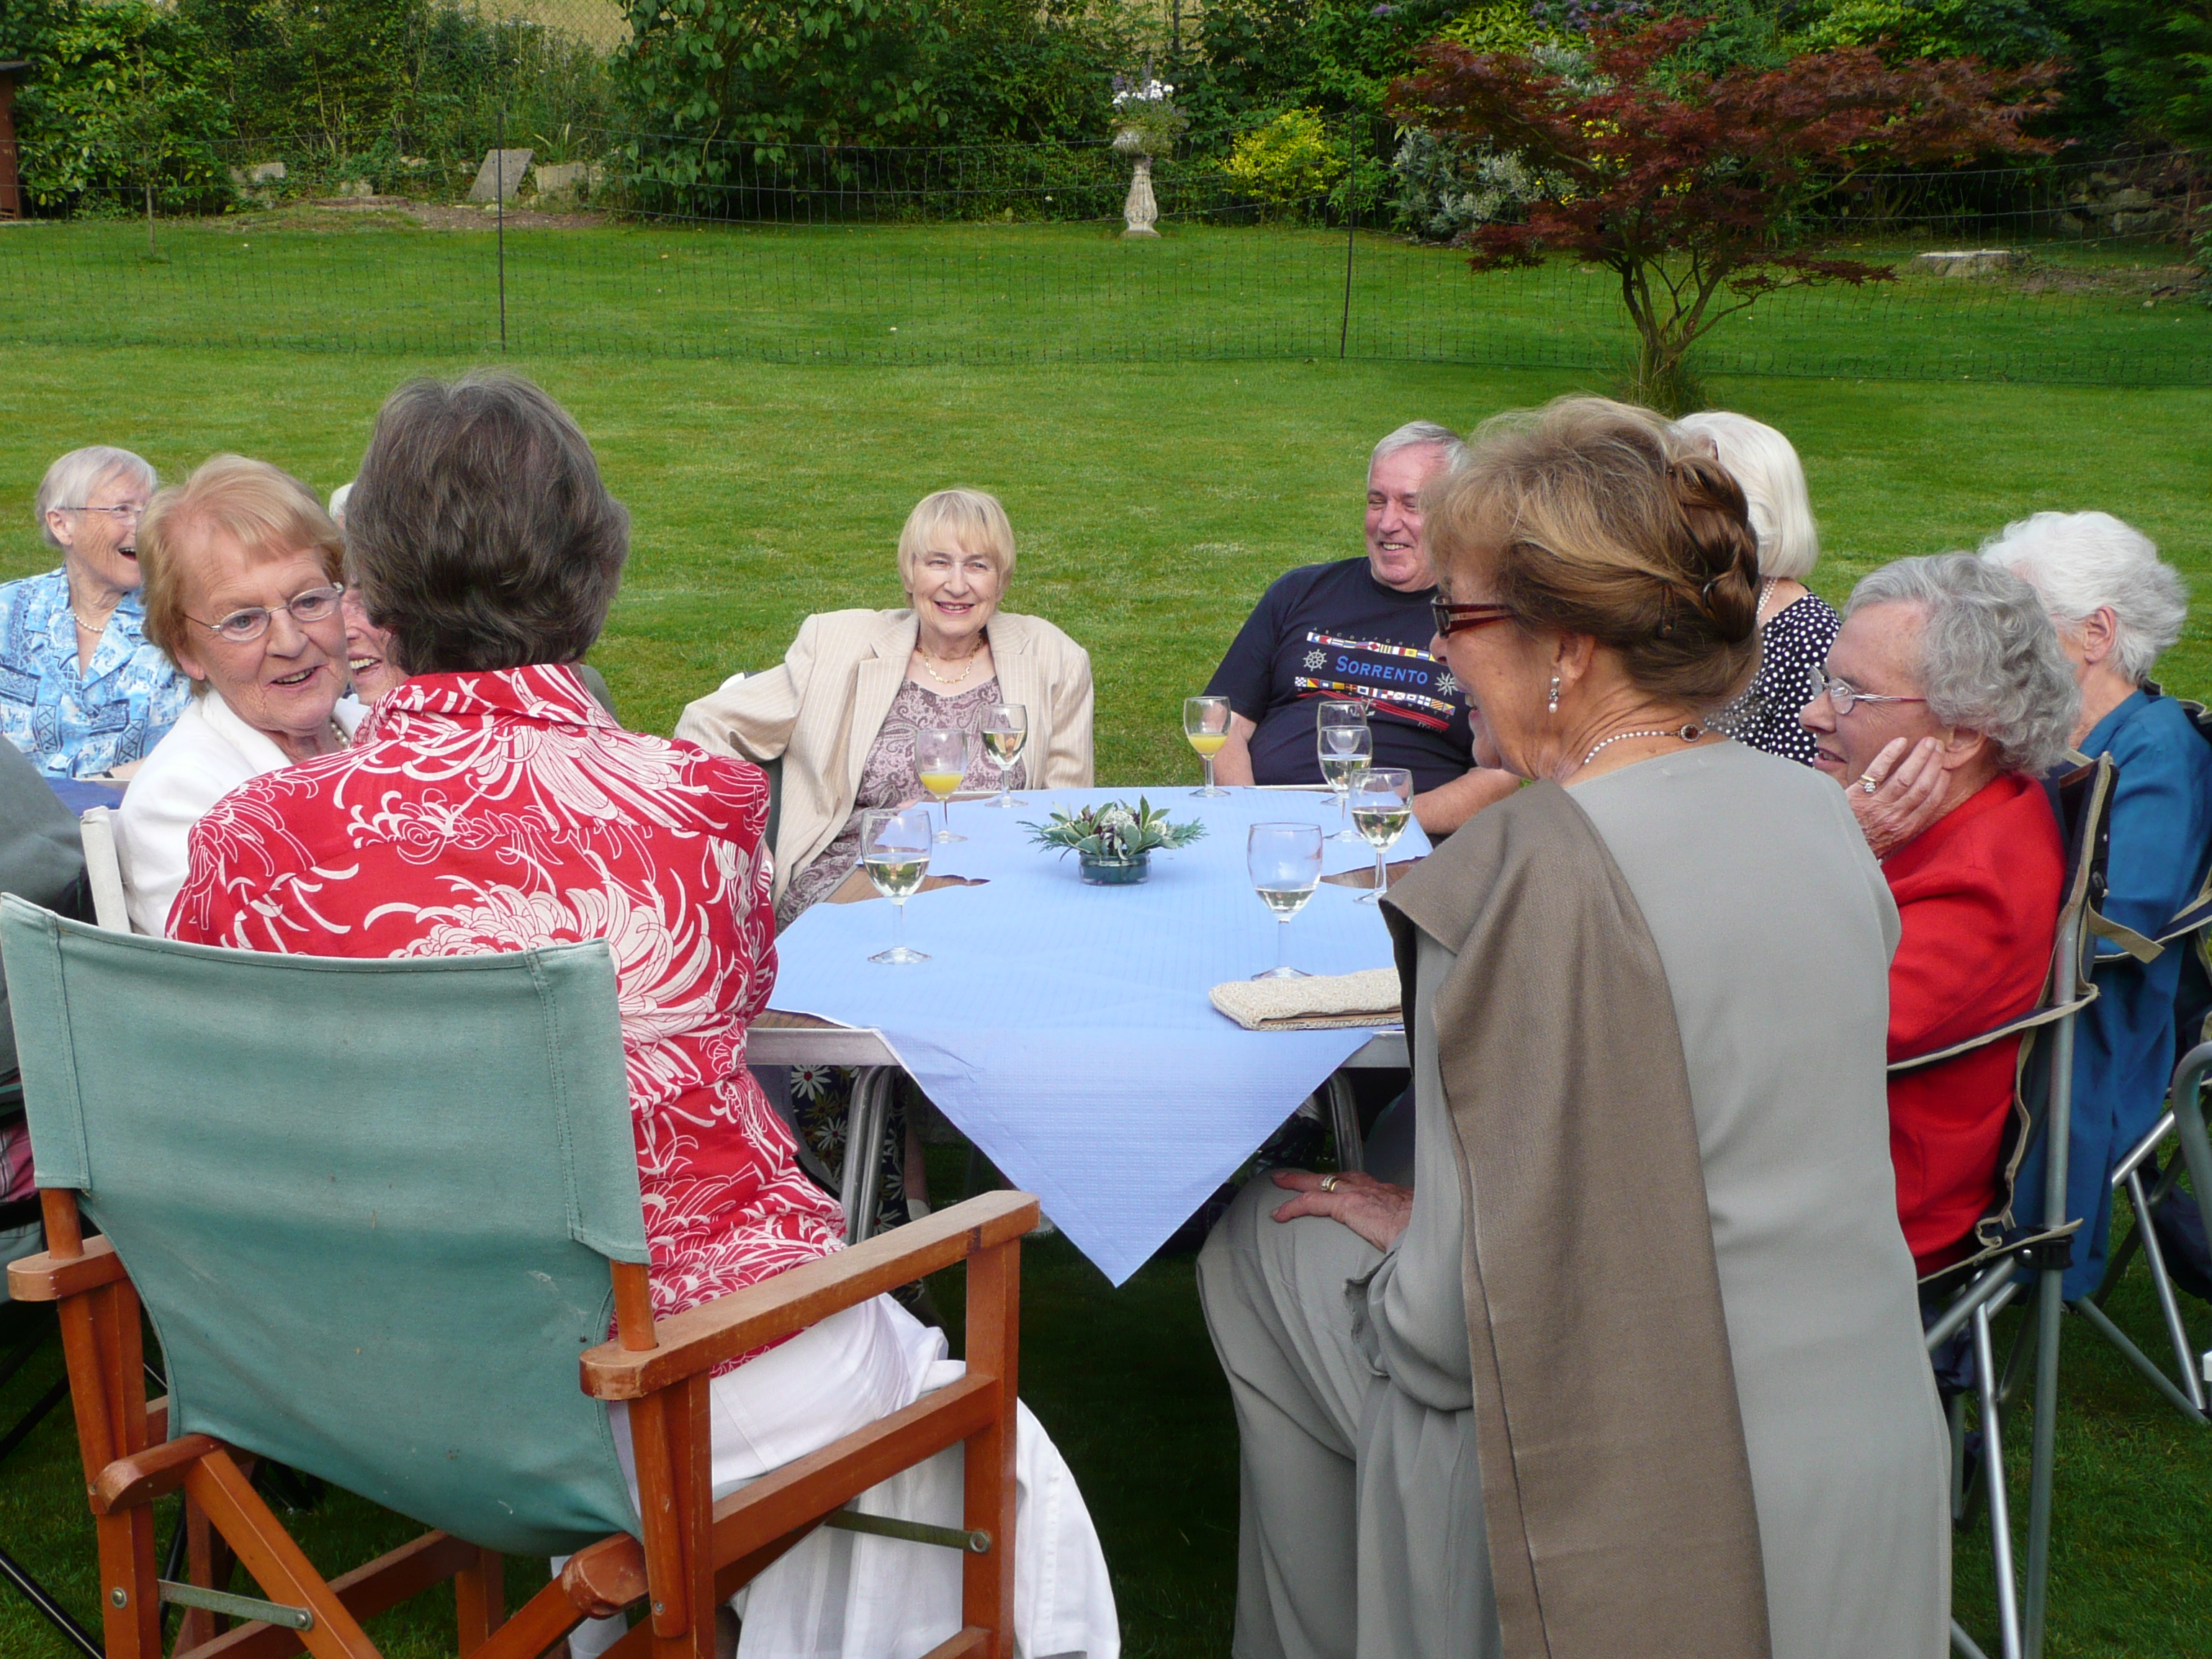 Members from the Friends of Bath